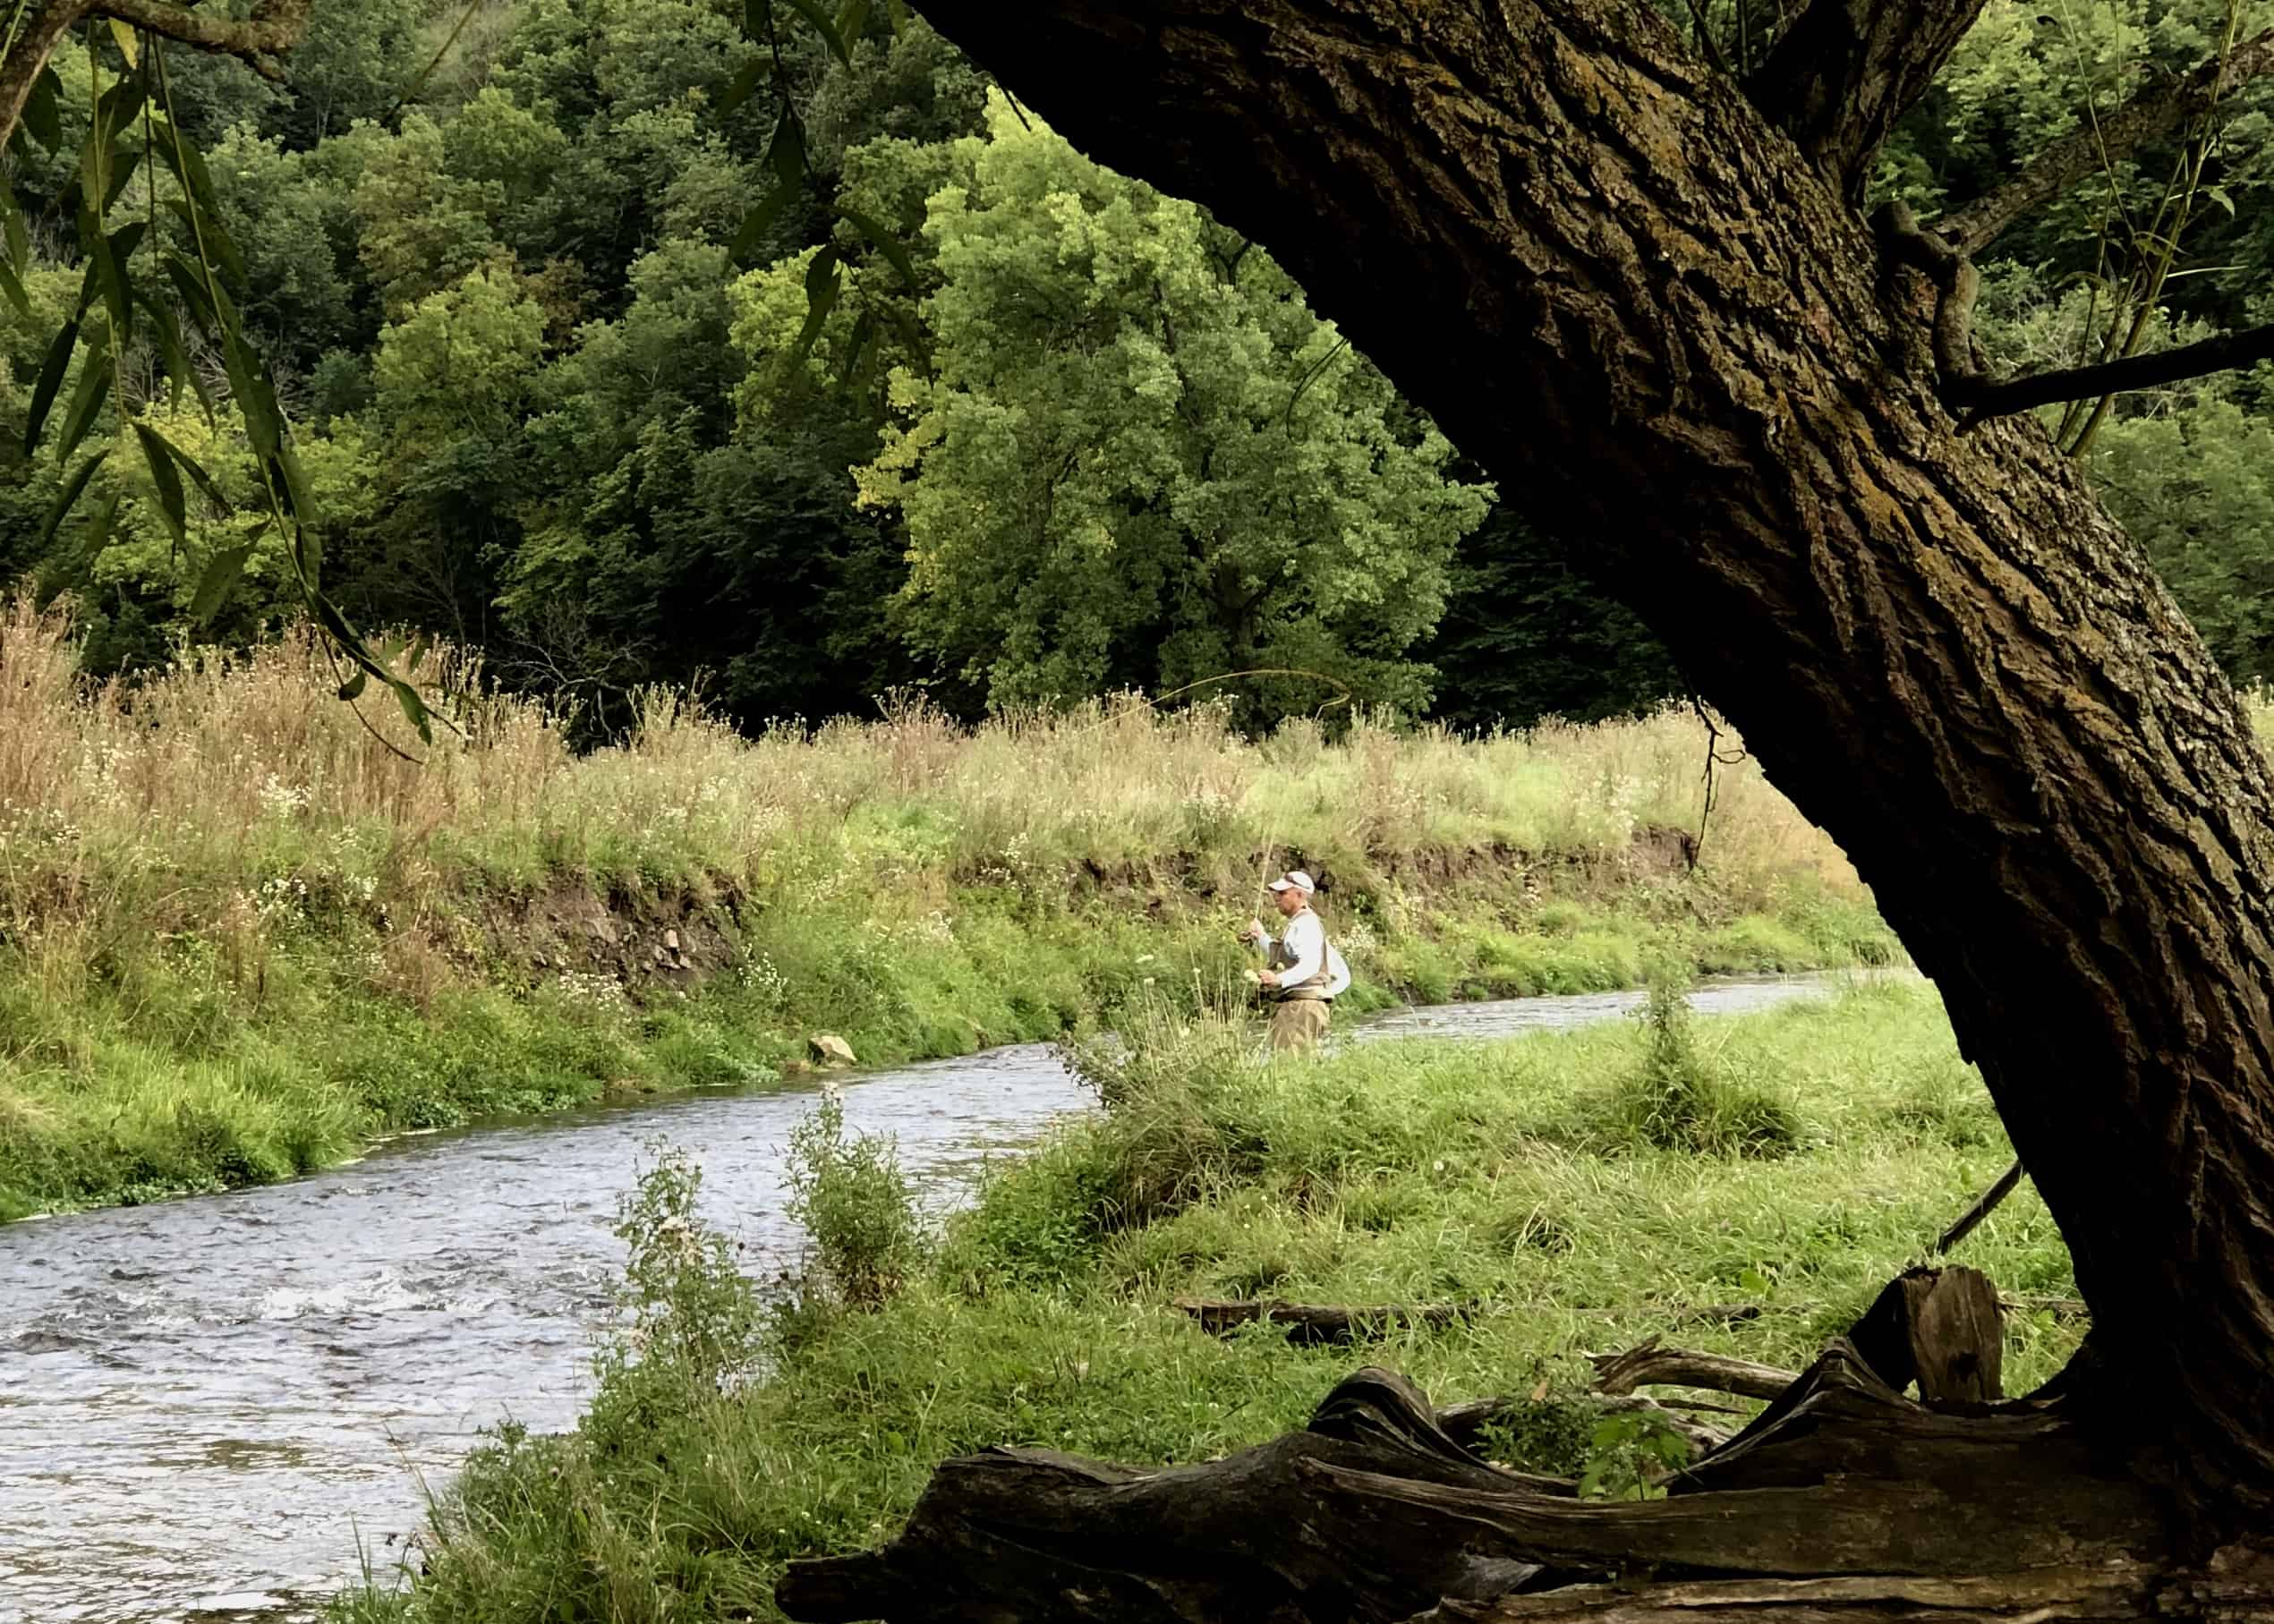 Guided Fly Fishing Decorah Iowa